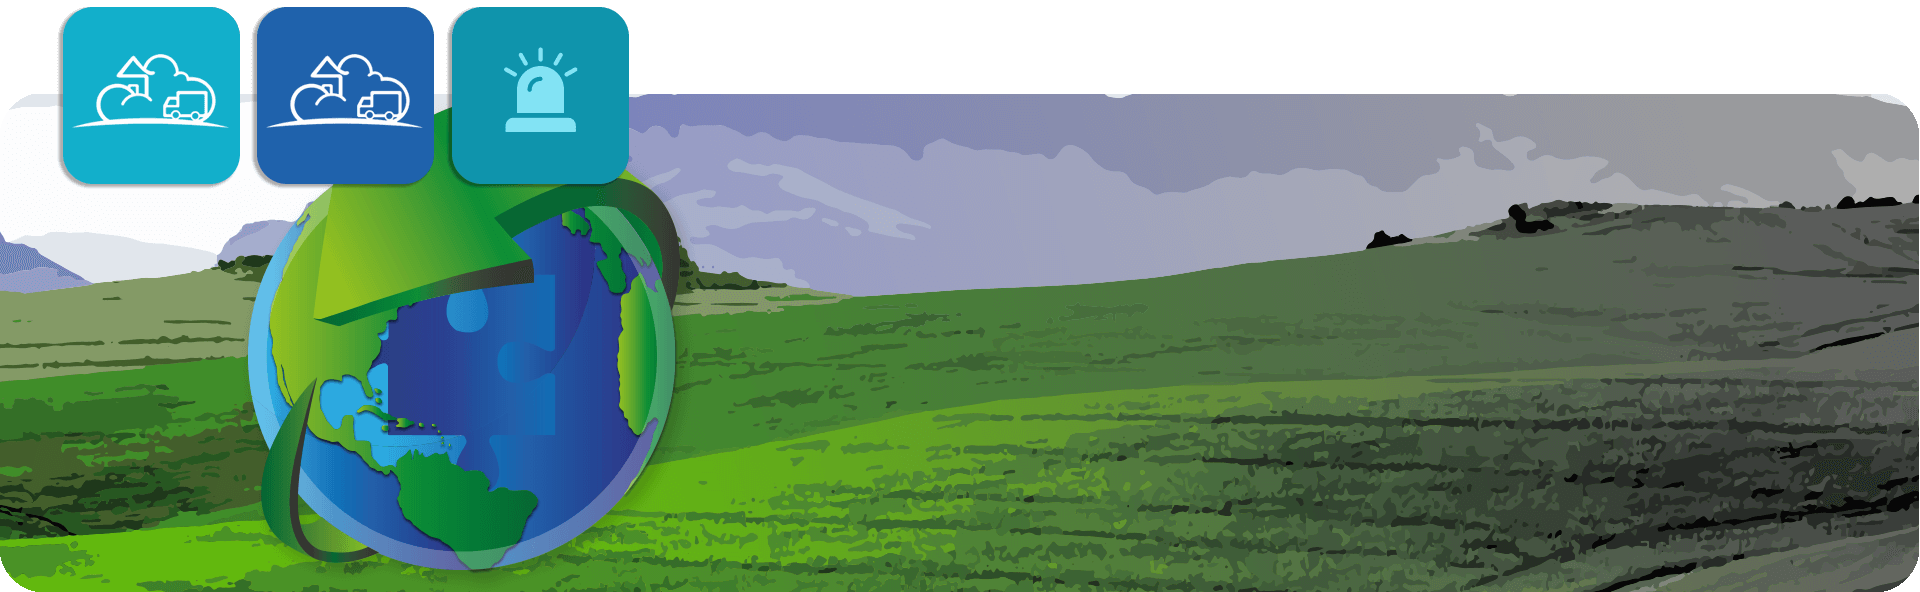 CSS world environment day logo on landscape background